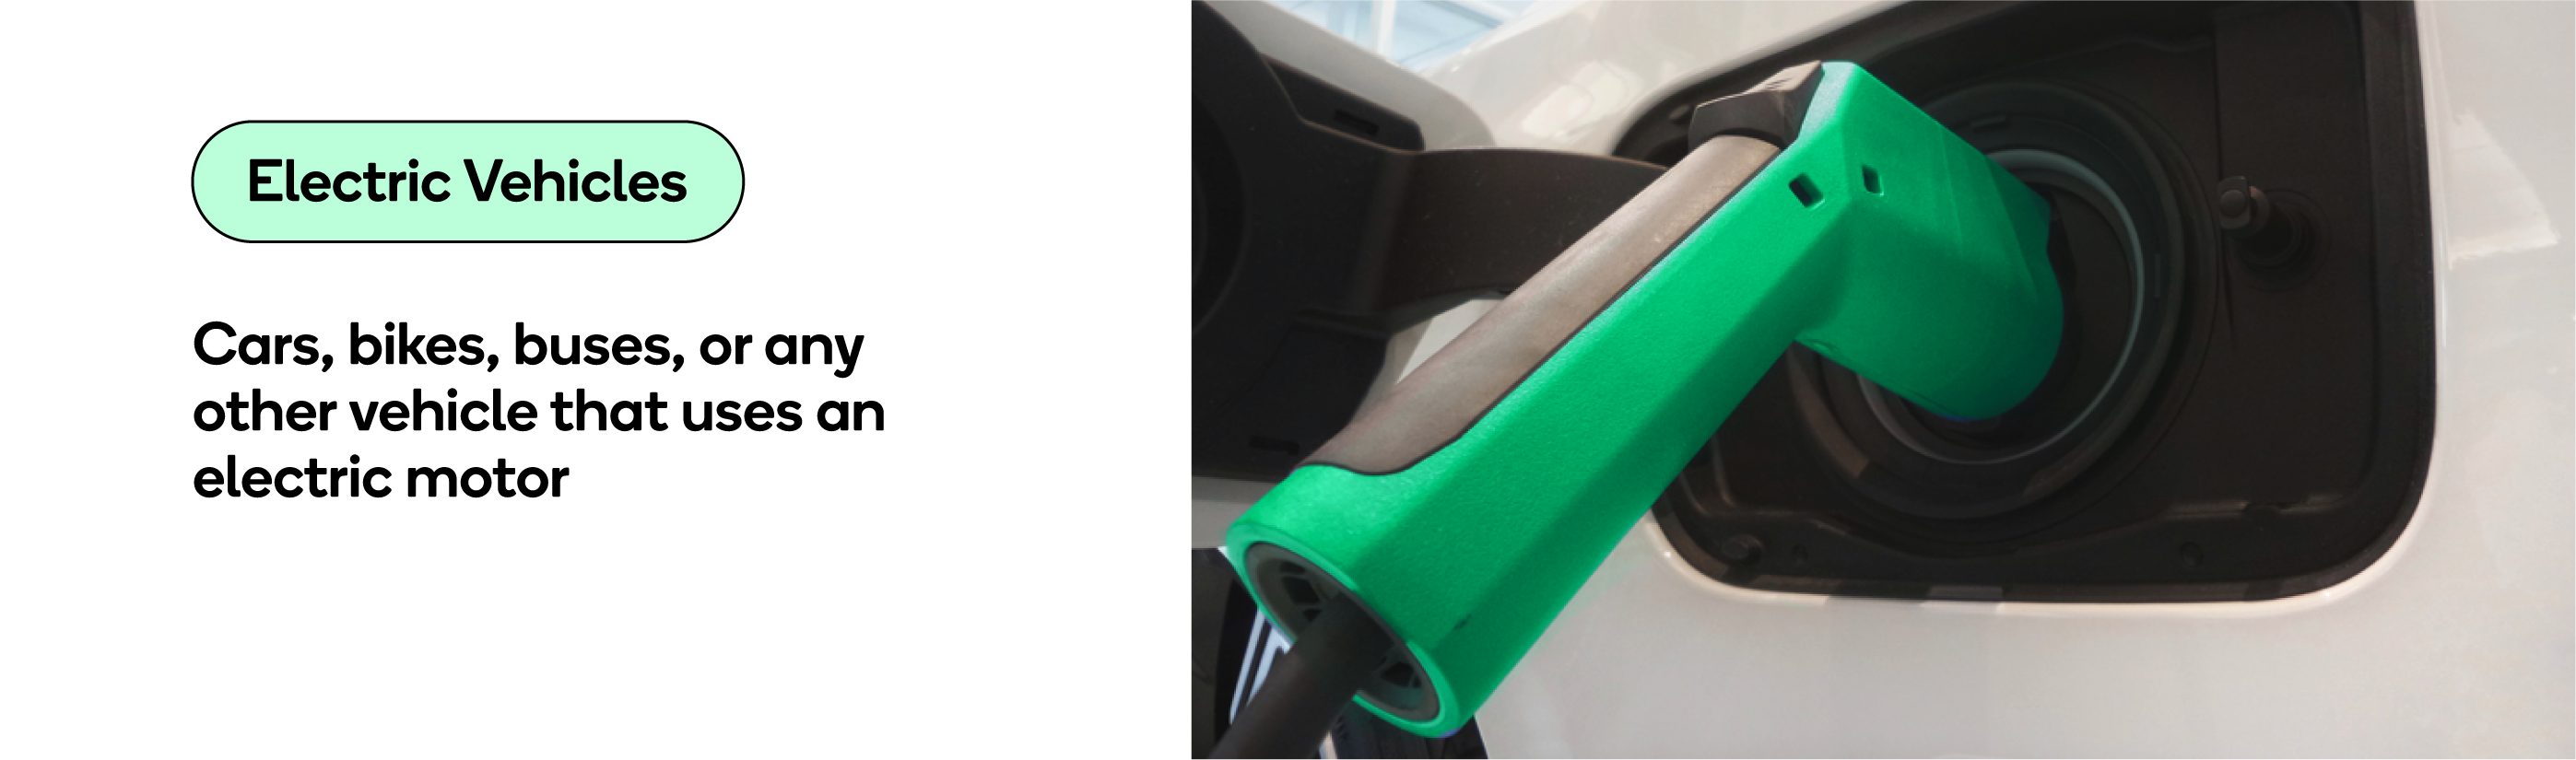 Electric vehicles include cars, buses, bikes or any other vehicle that uses an electric motor.